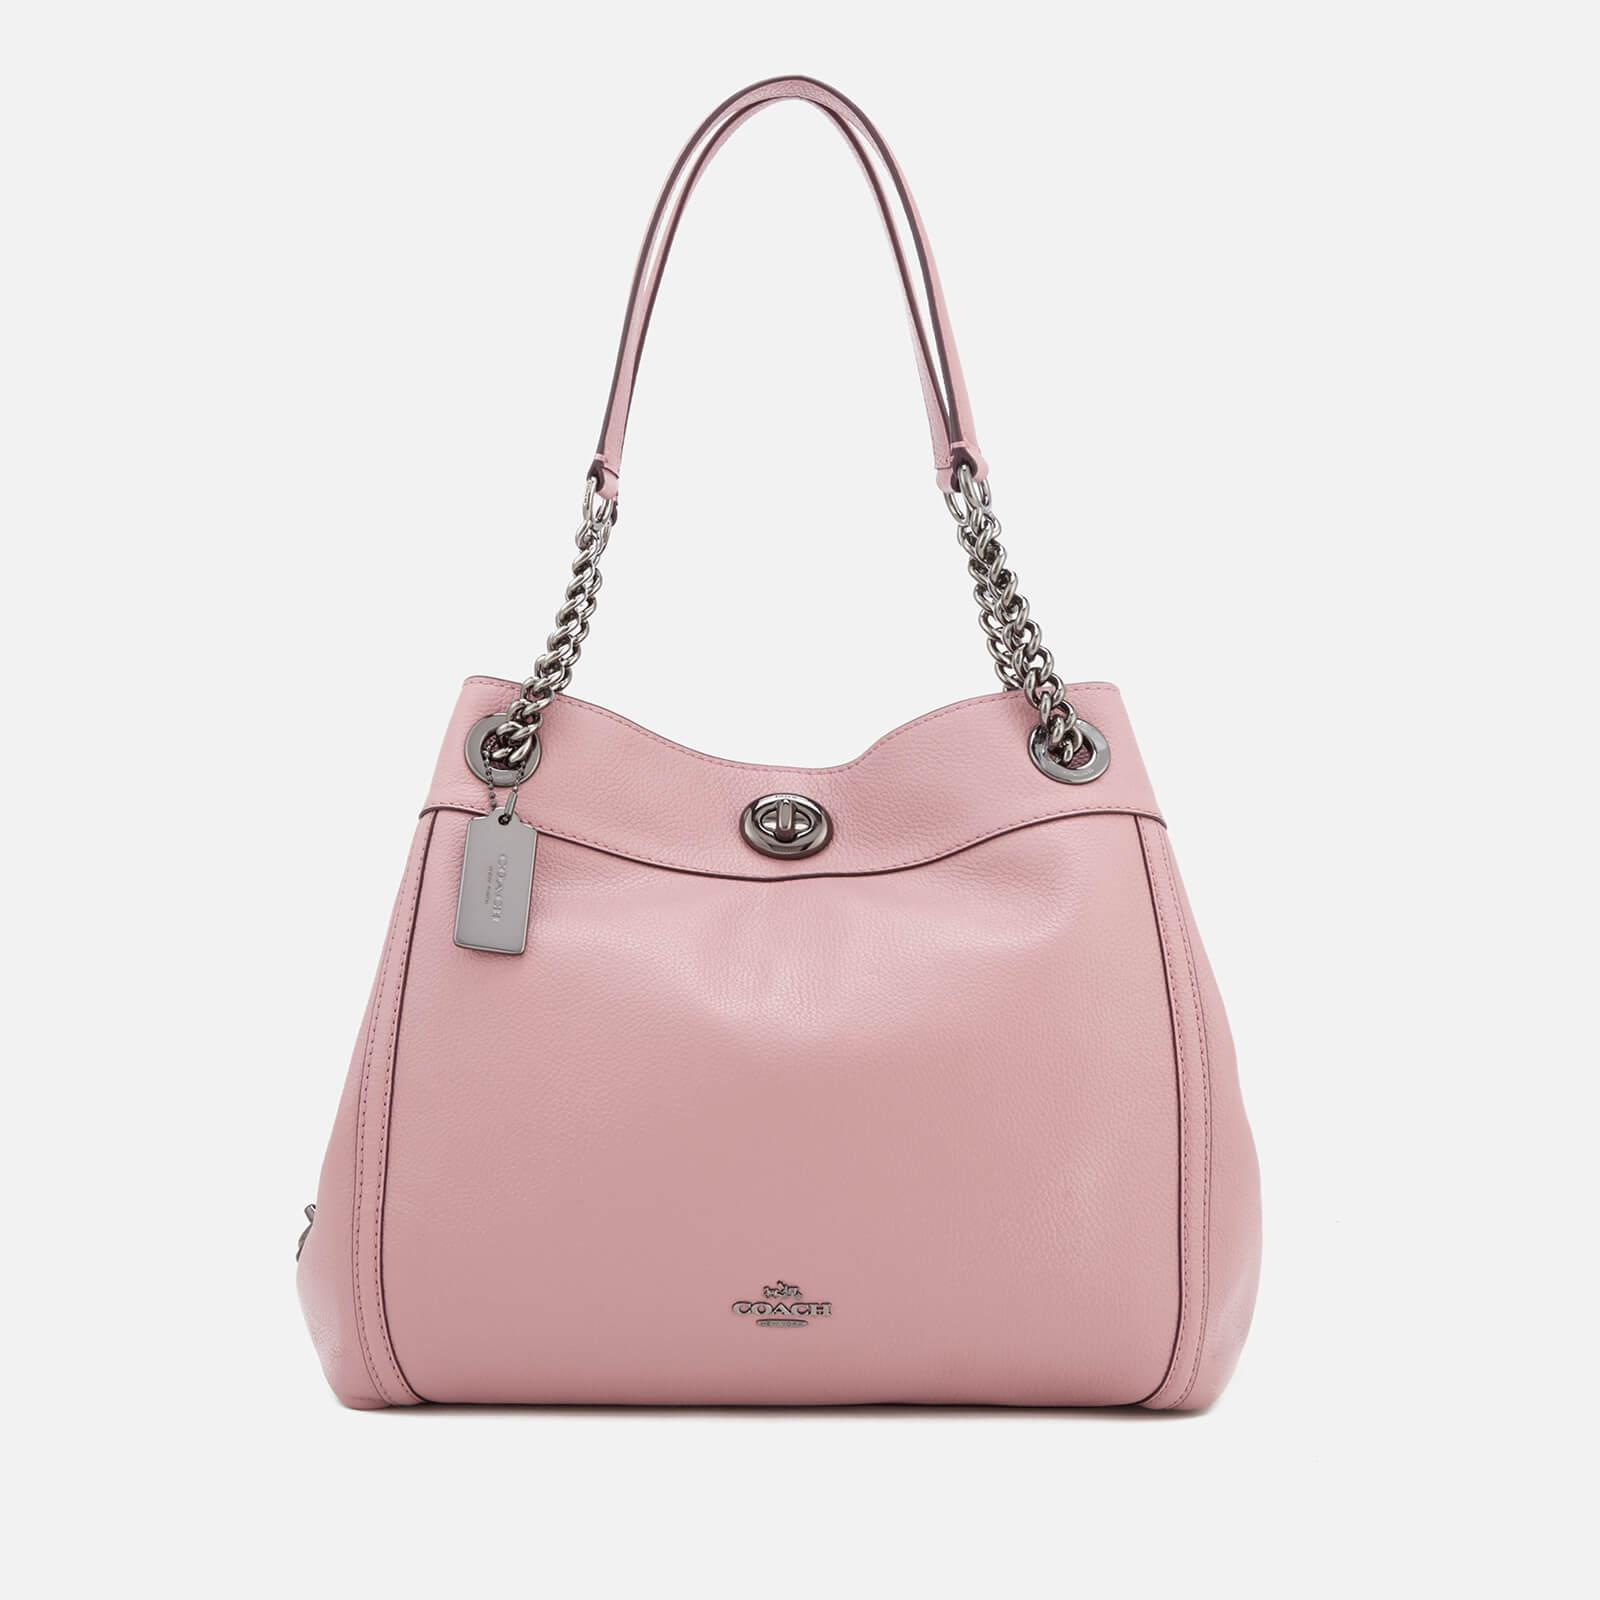 Tote - Edie Polished Leather Turnlock Shoulder Bag Peony - rose - Tote for ladies Coach z2PpnzA